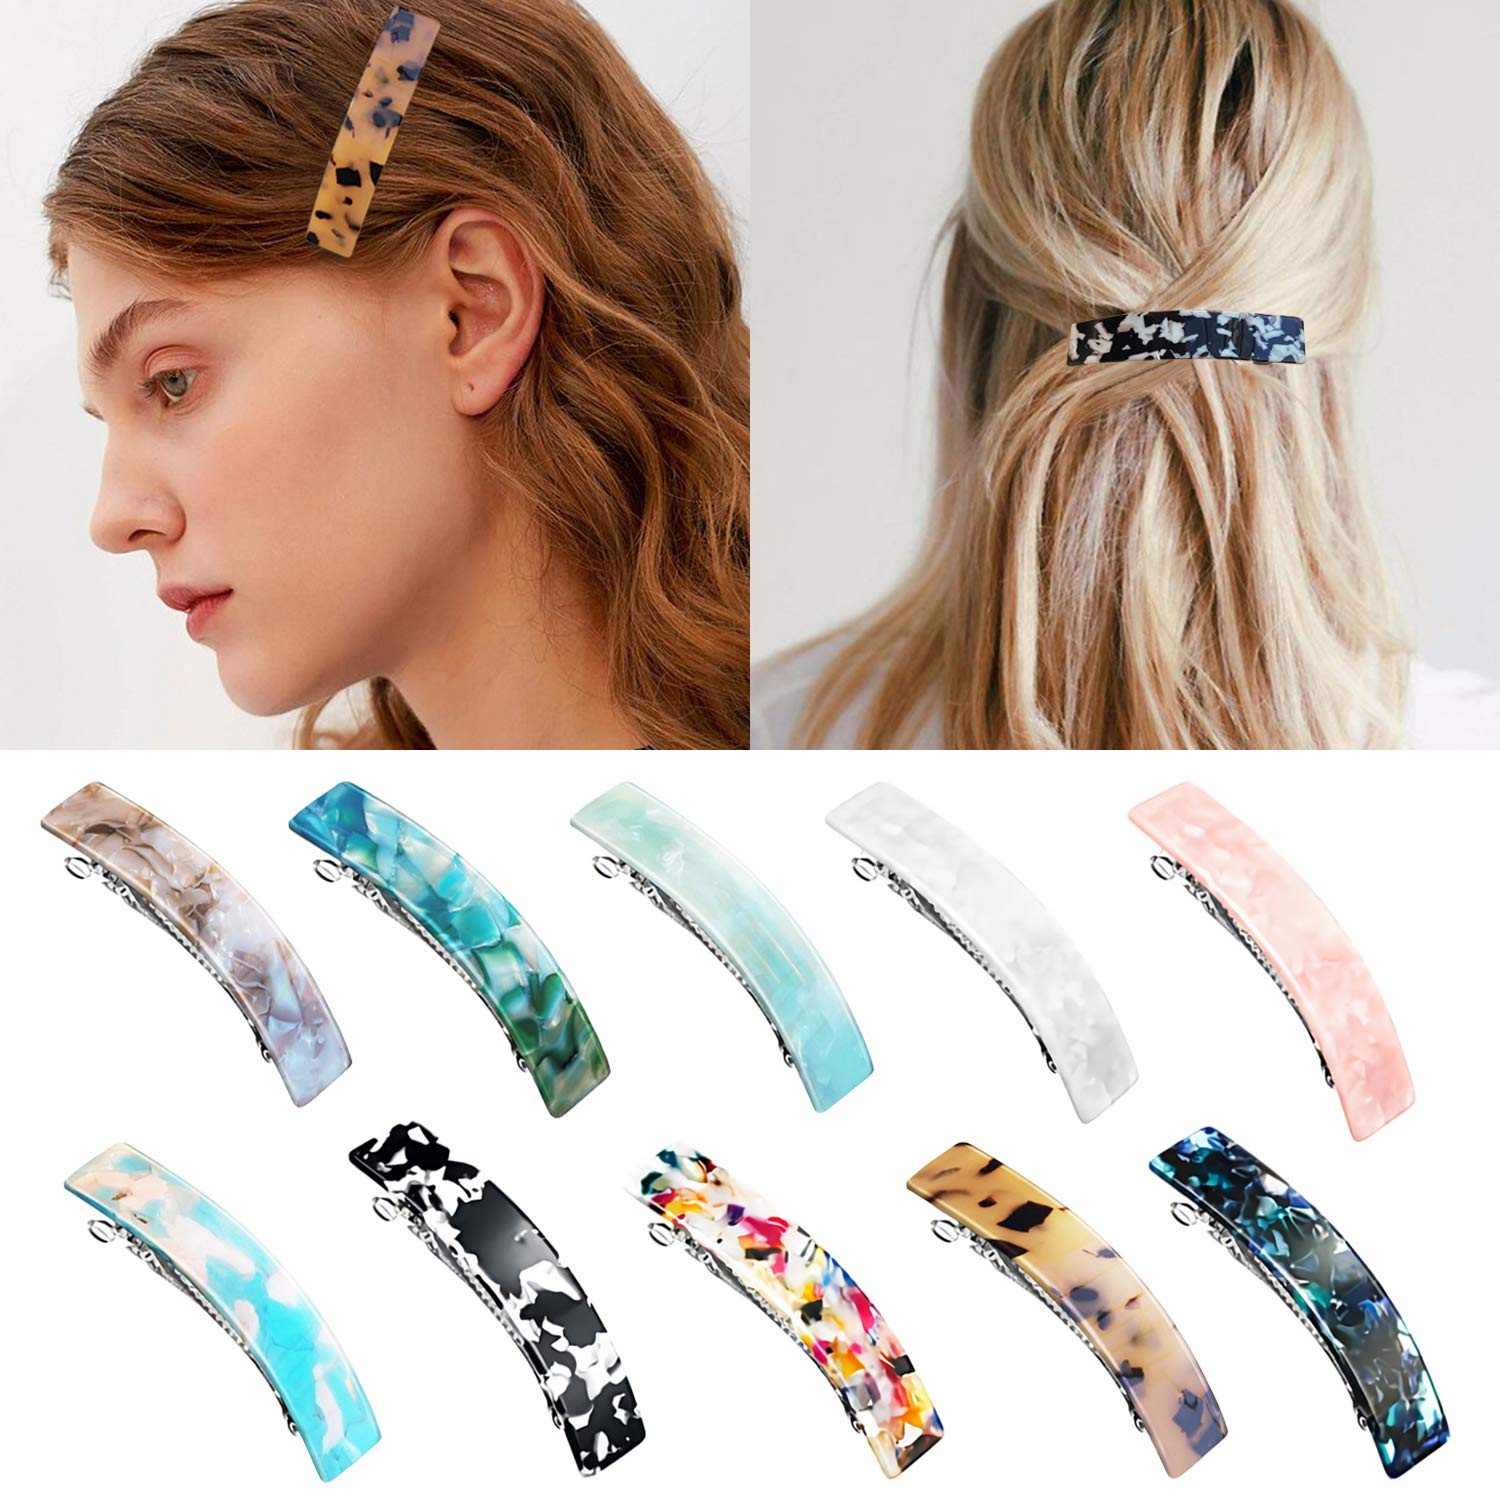 ZYNERY 10 Pieces French Elegant Rectangle Hair Barrettes for Women Girls, Acrylic Tortoise Shell Hair Clips for Thick Hair - Automatic Hairpins with Marble Print